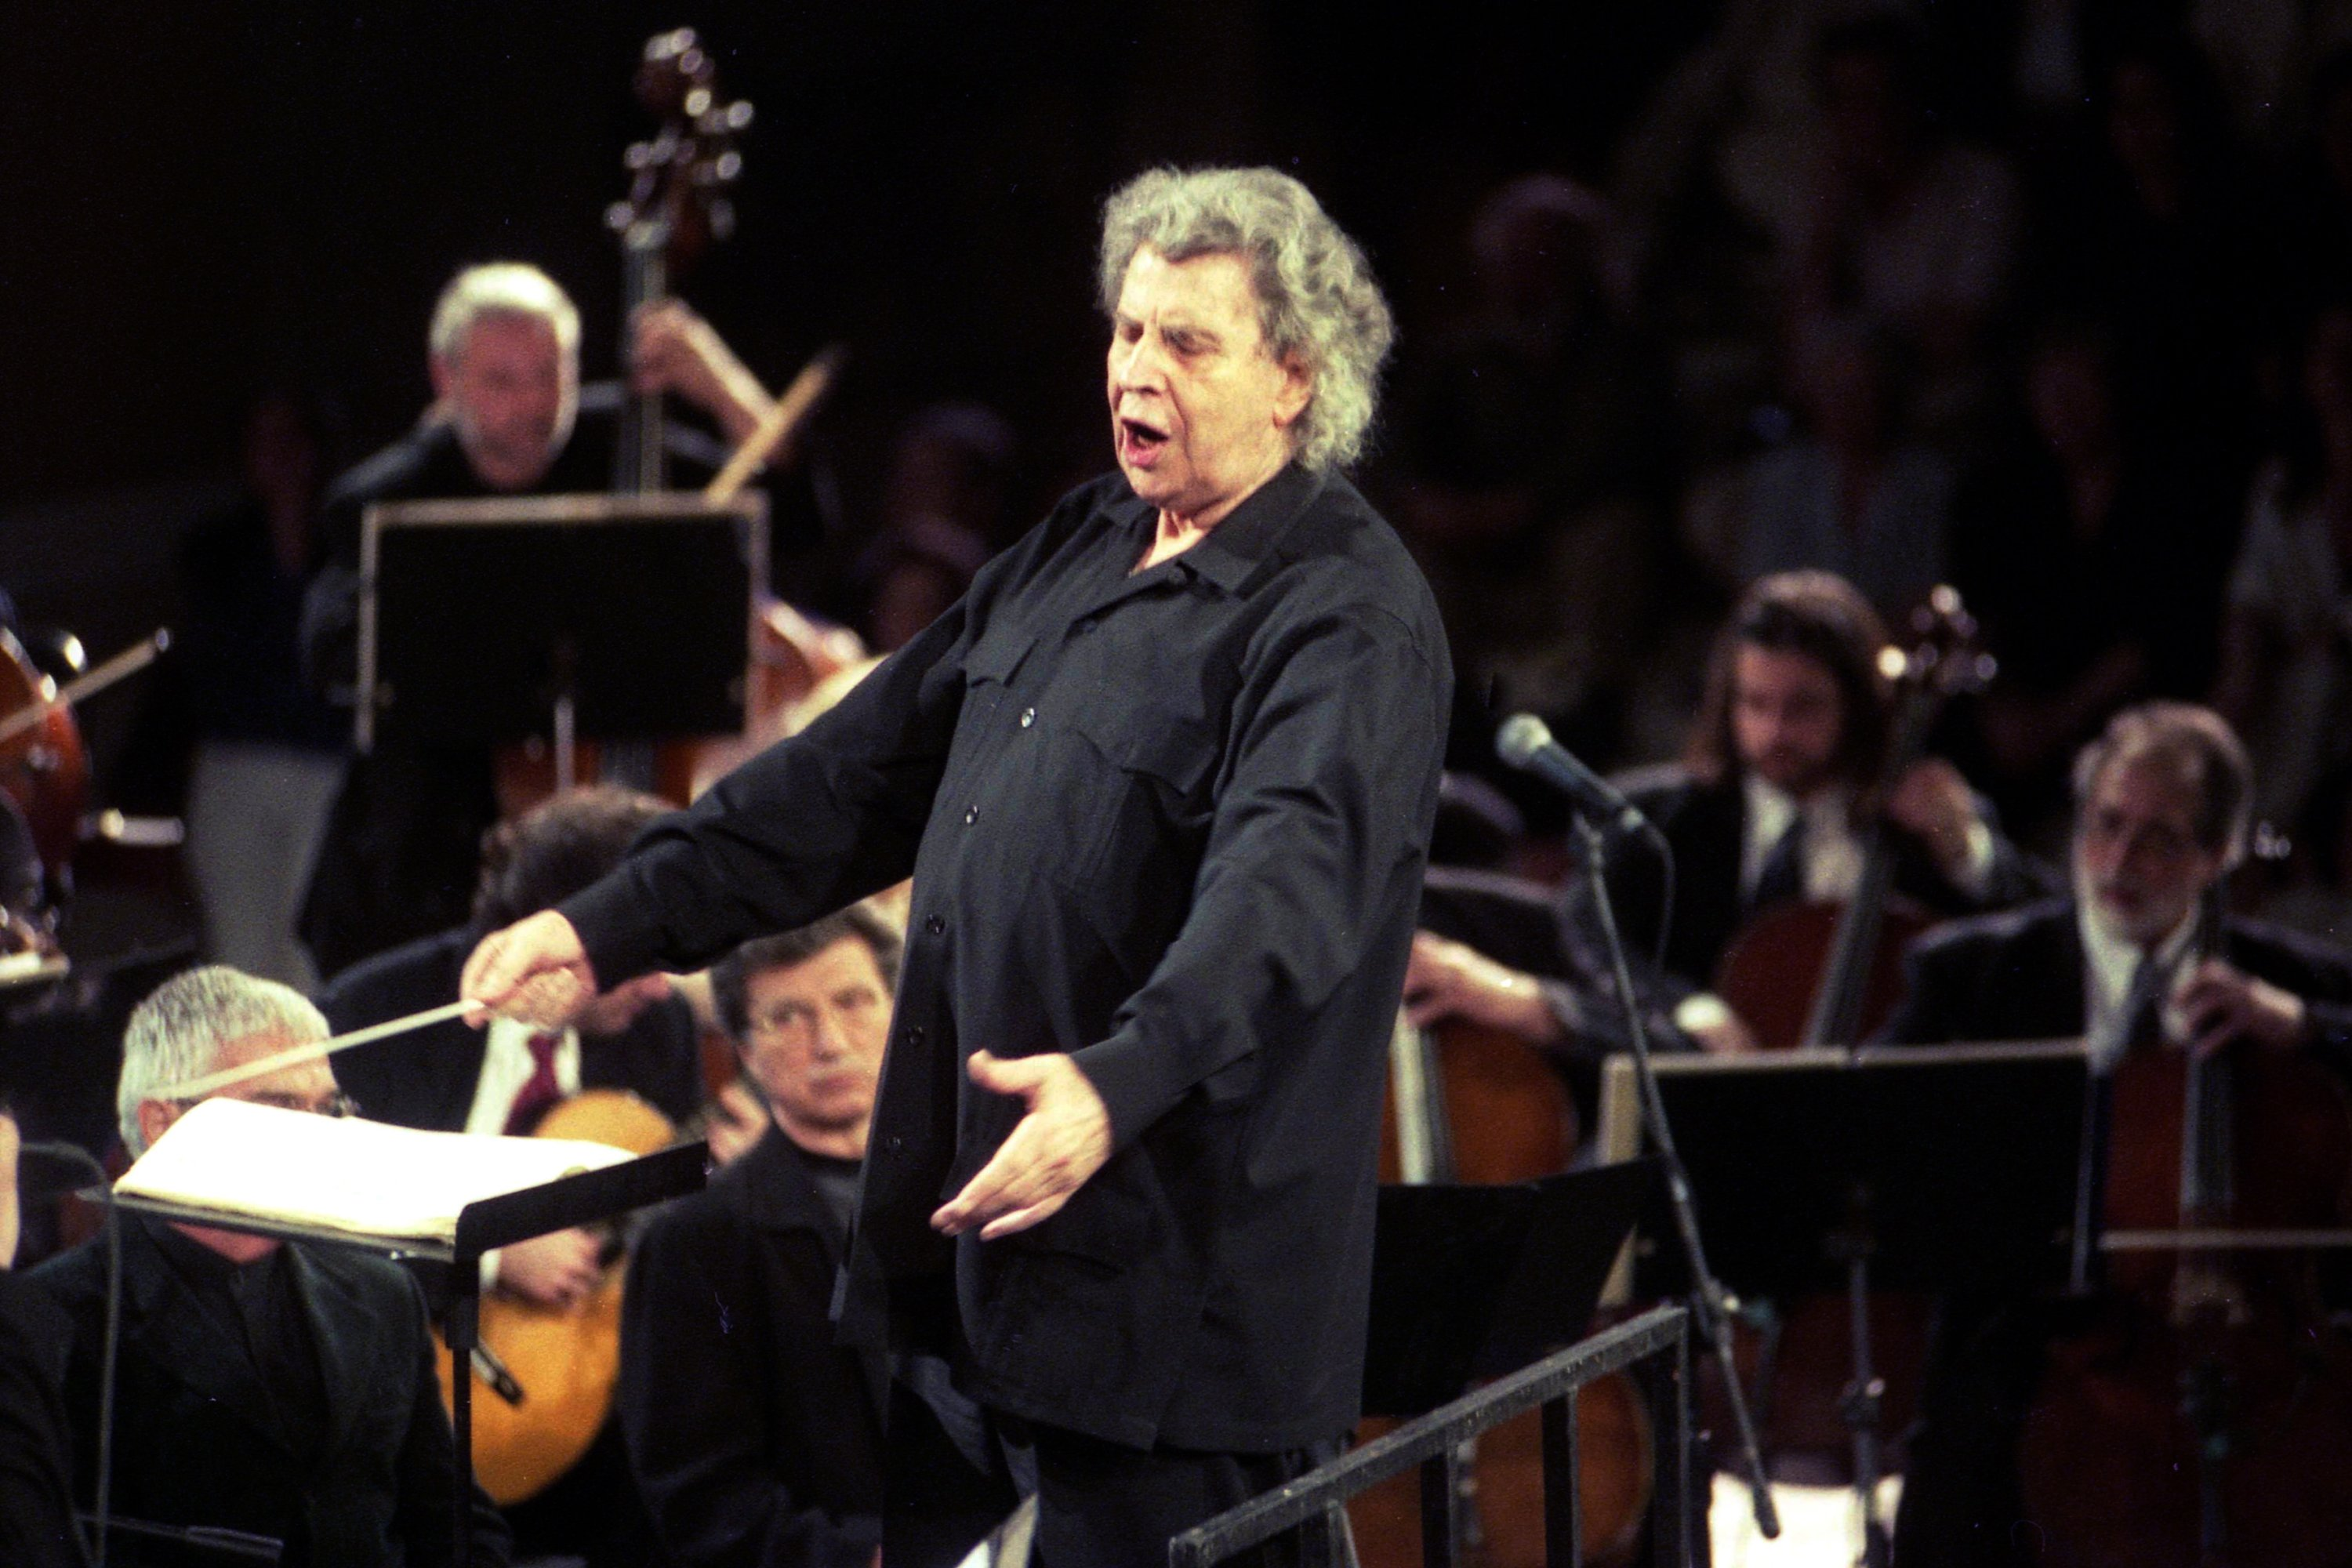 Greek composer Mikis Theodorakis directs his orchestra during a rehearsal at the ancient Herodium Atticon theater at the steps of Acropolis, in Athens, Greece, May 20, 2001.